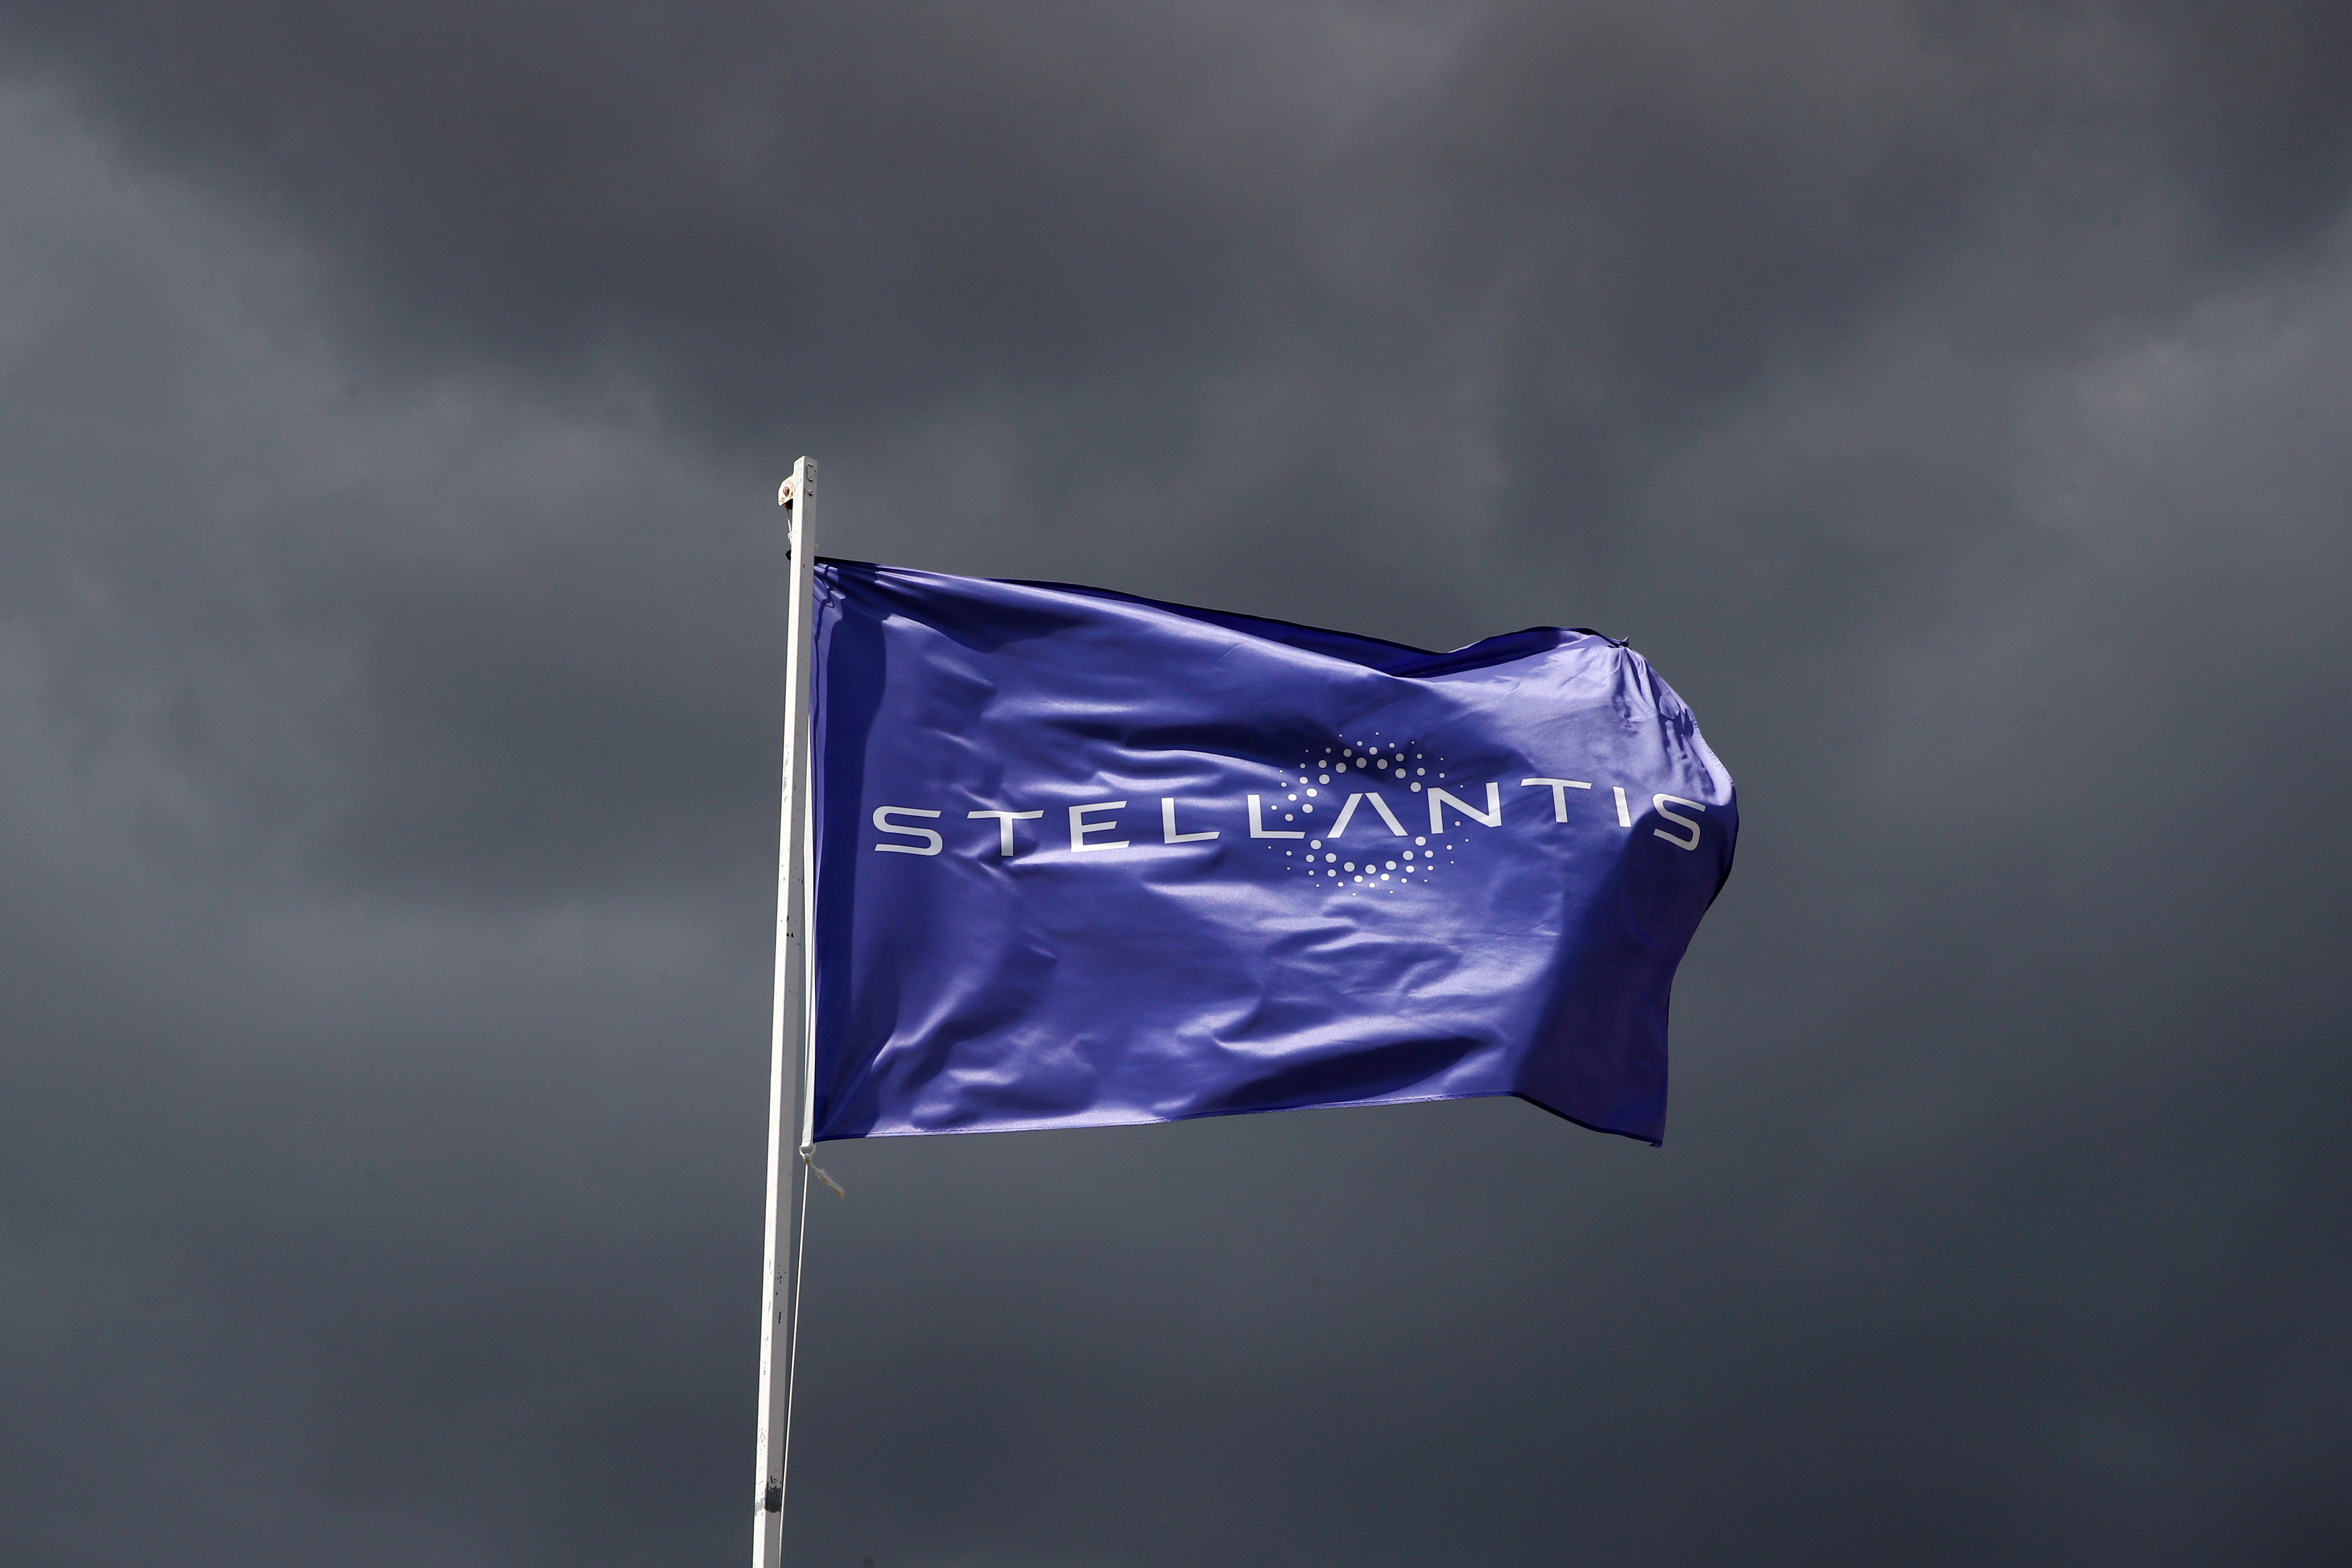 A flag with the logo of Stellantis is seen at the company's corporate office building in Saint-Quentin-en-Yvelines near Paris, France, May 5, 2021. REUTERS/Gonzalo Fuentes/File Photo